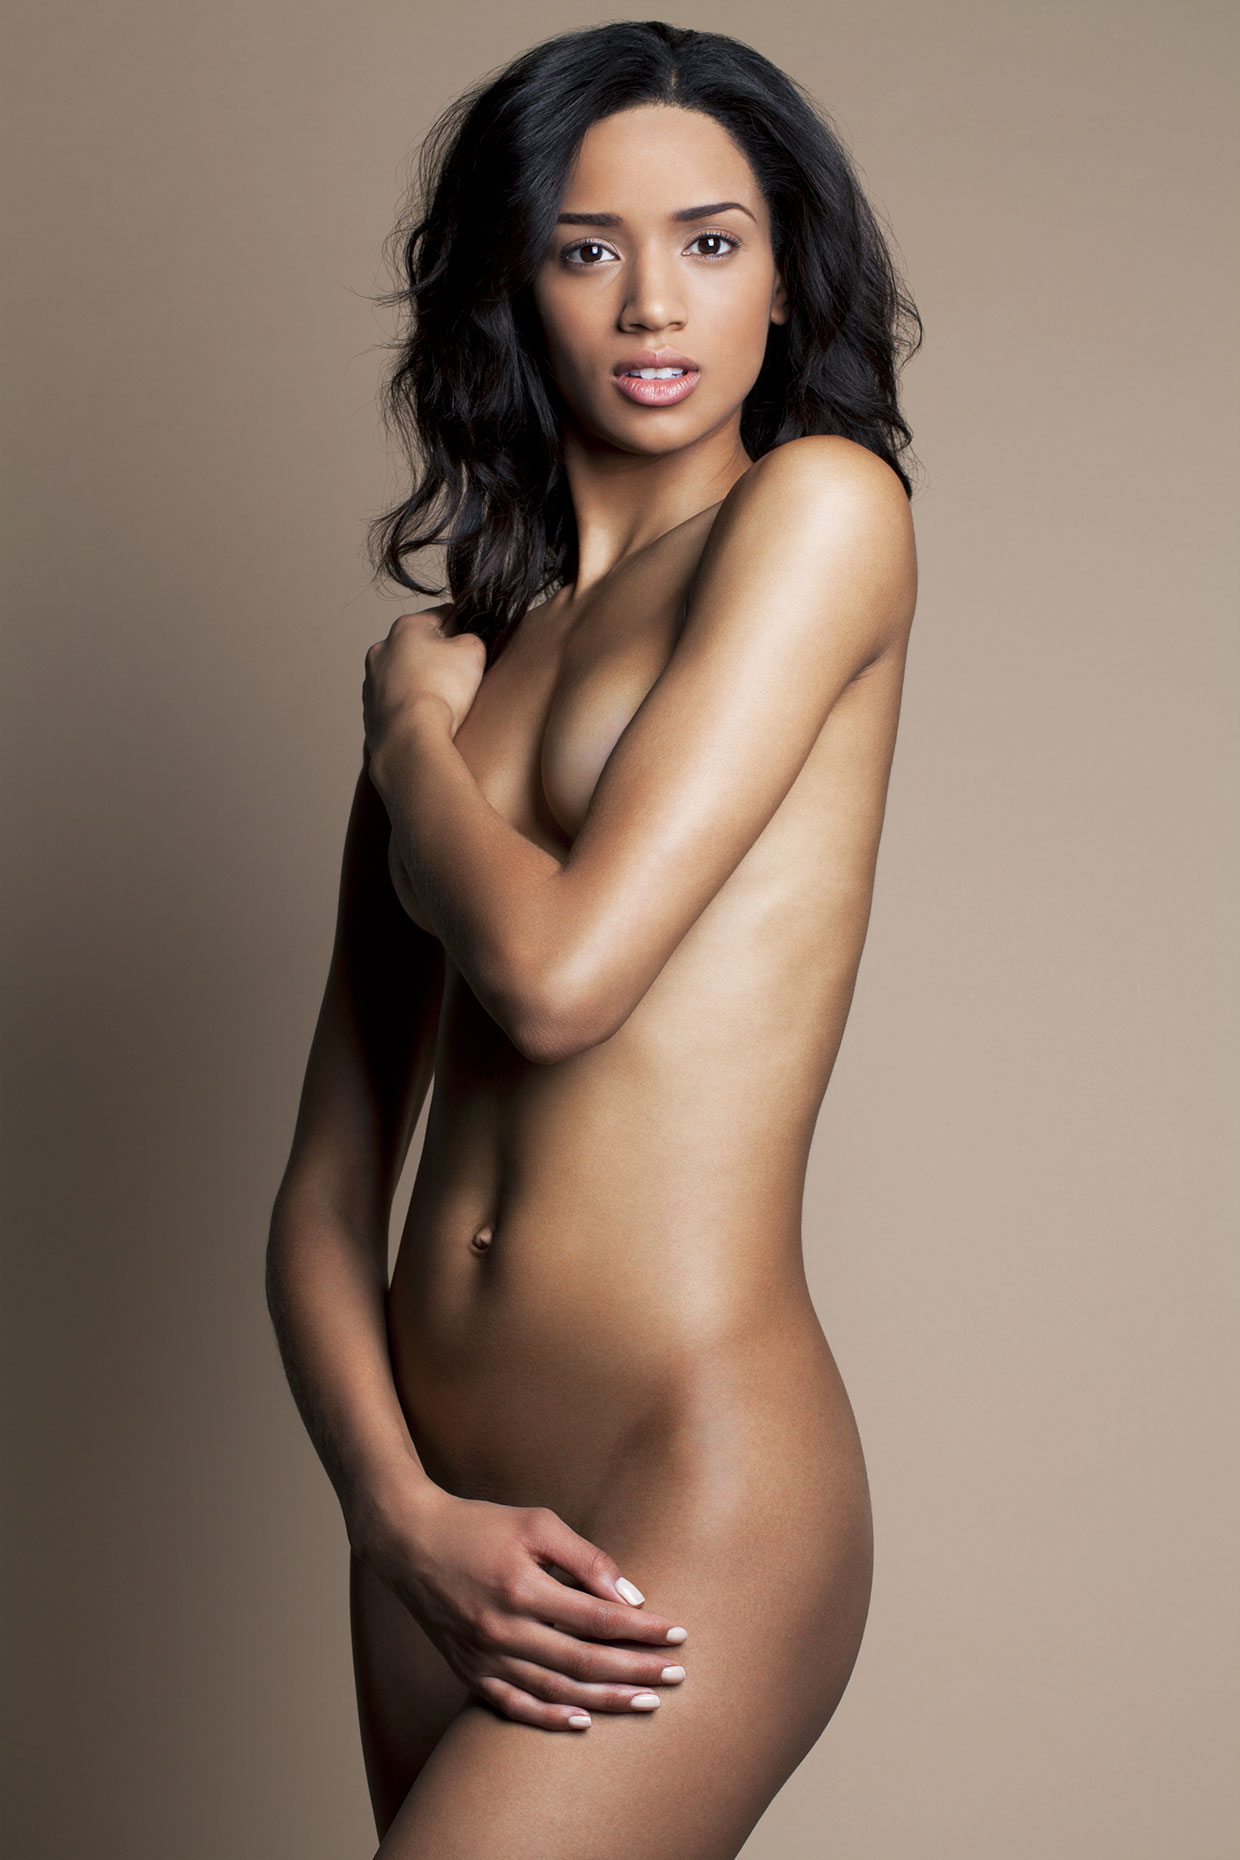 Nude young African American woman covering up with her arms.